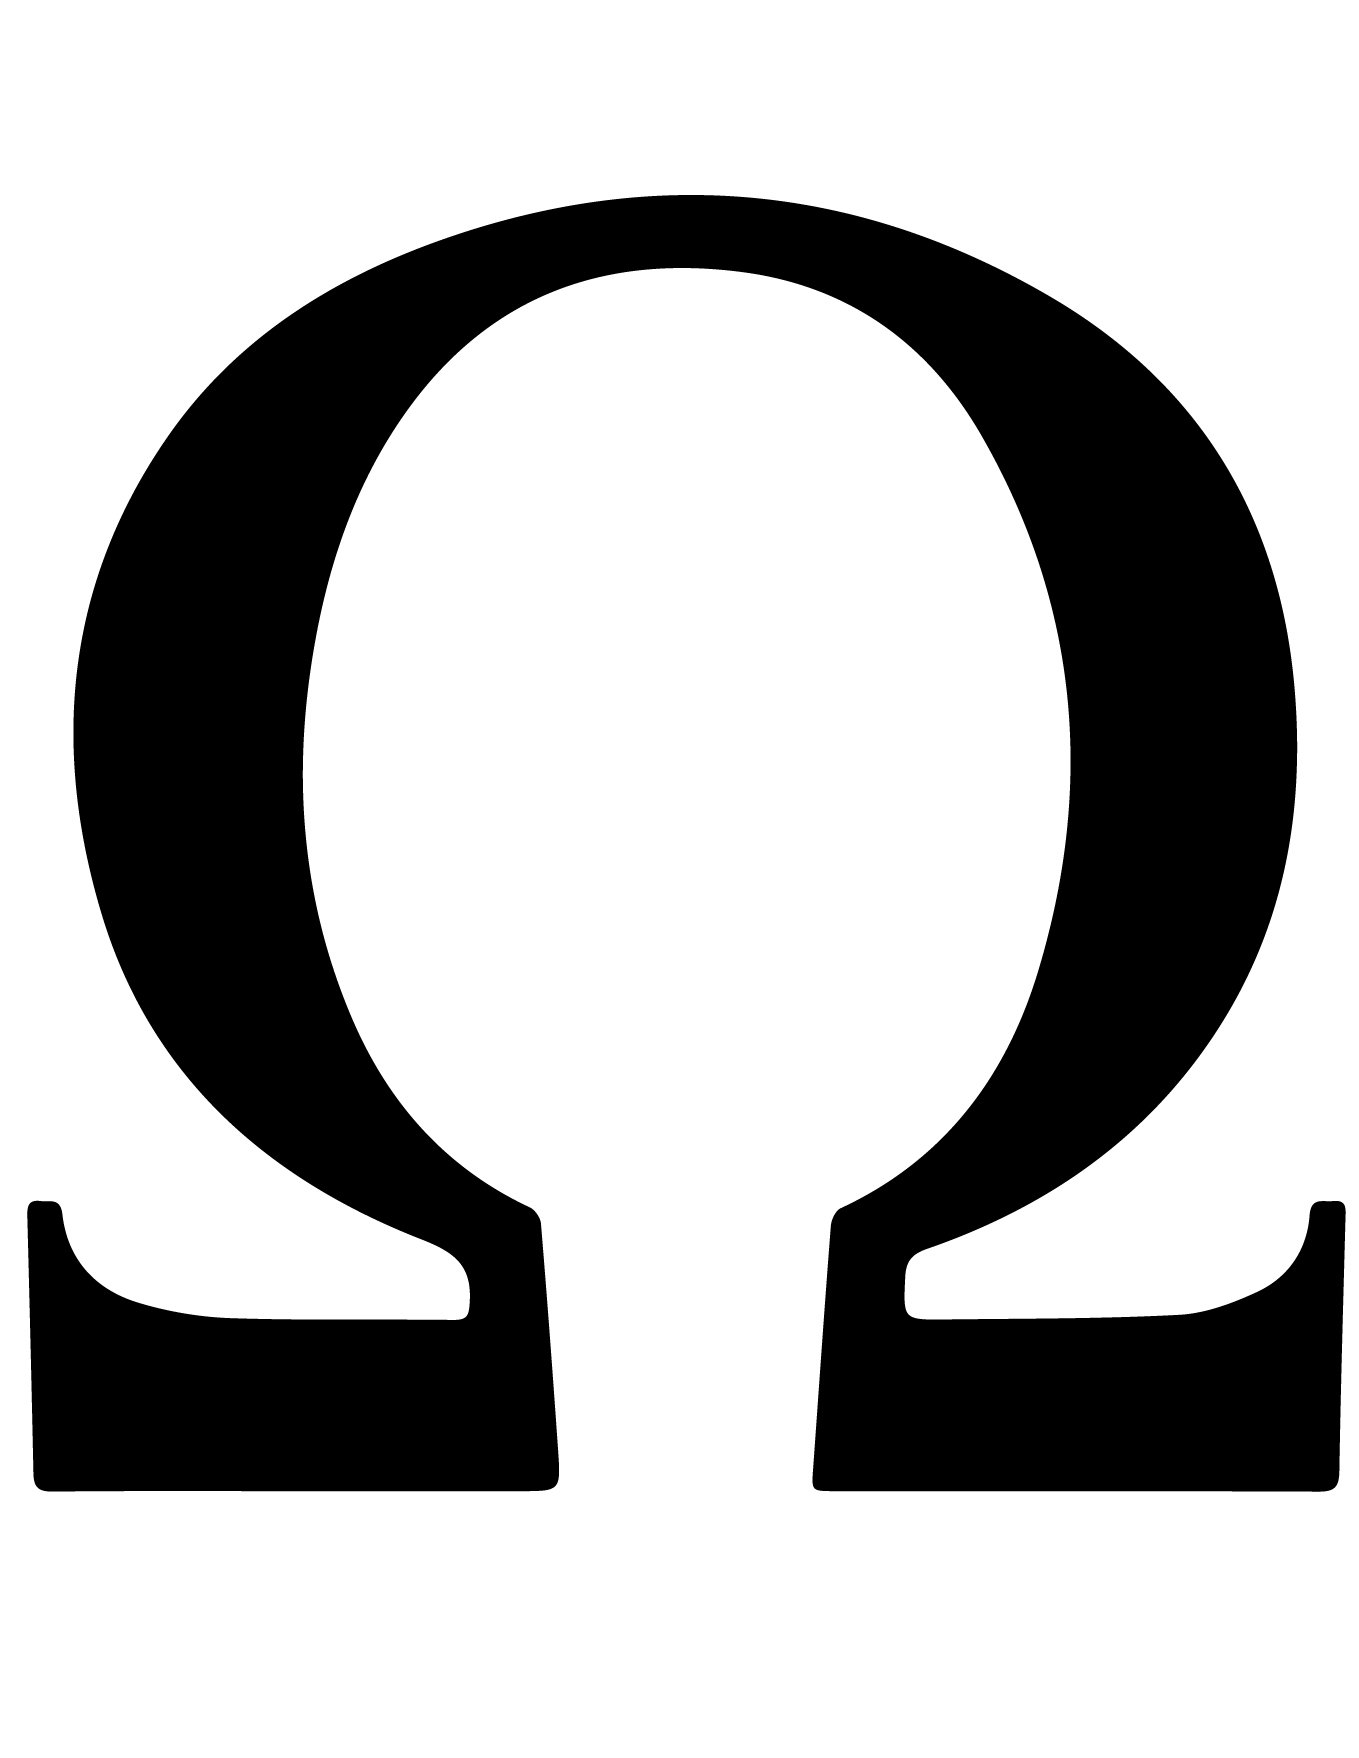 Omega symbolsign and its meaning mythologian it also represents the value of 800 in the greek numeric system which literally means a great value or the great o biocorpaavc Image collections